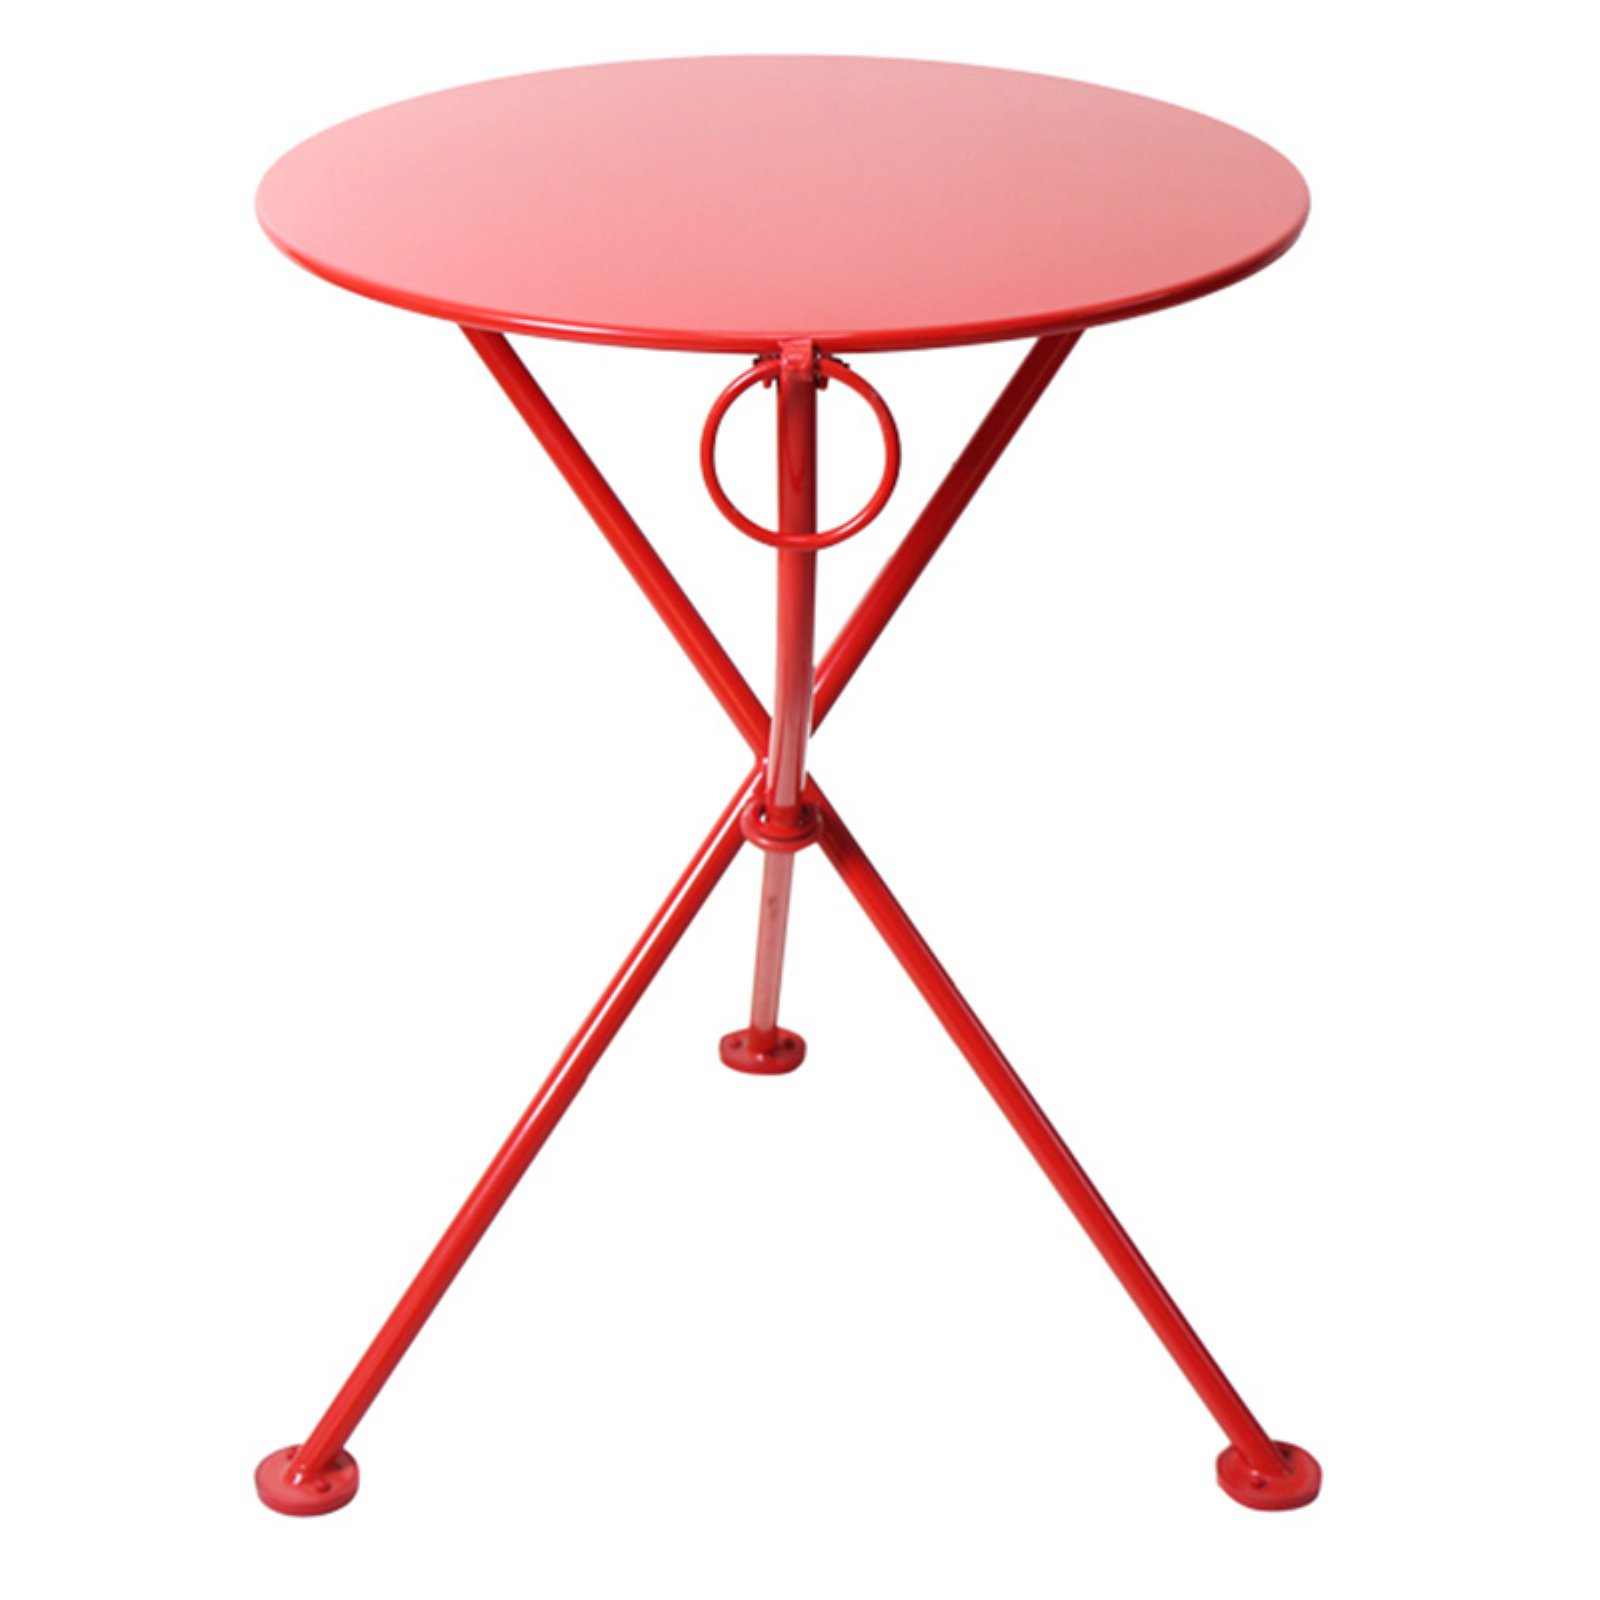 Furniture Designhouse French Veranda European Cafe 24 in. Round Folding Patio Bistro Table